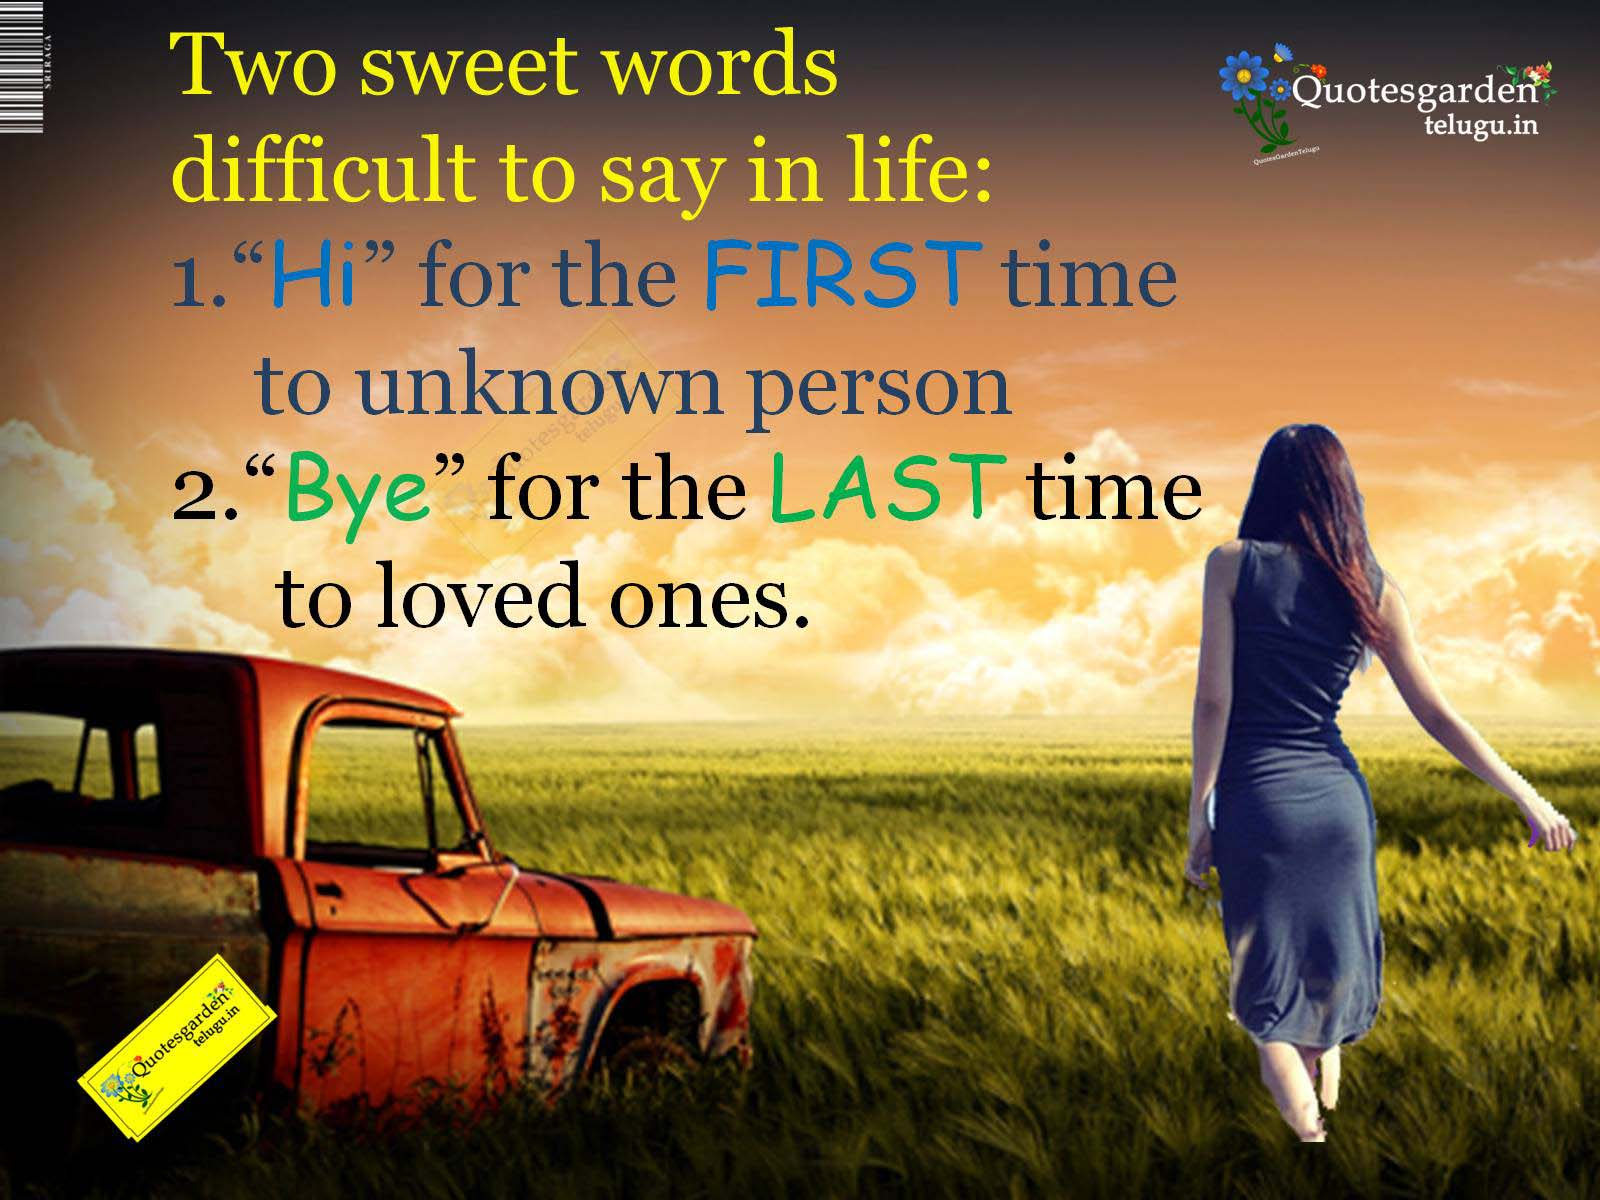 Heart Touching Wallpaper With Quotes In Malayalam Two Sweet Words Very Difficult To Say In Life Heart